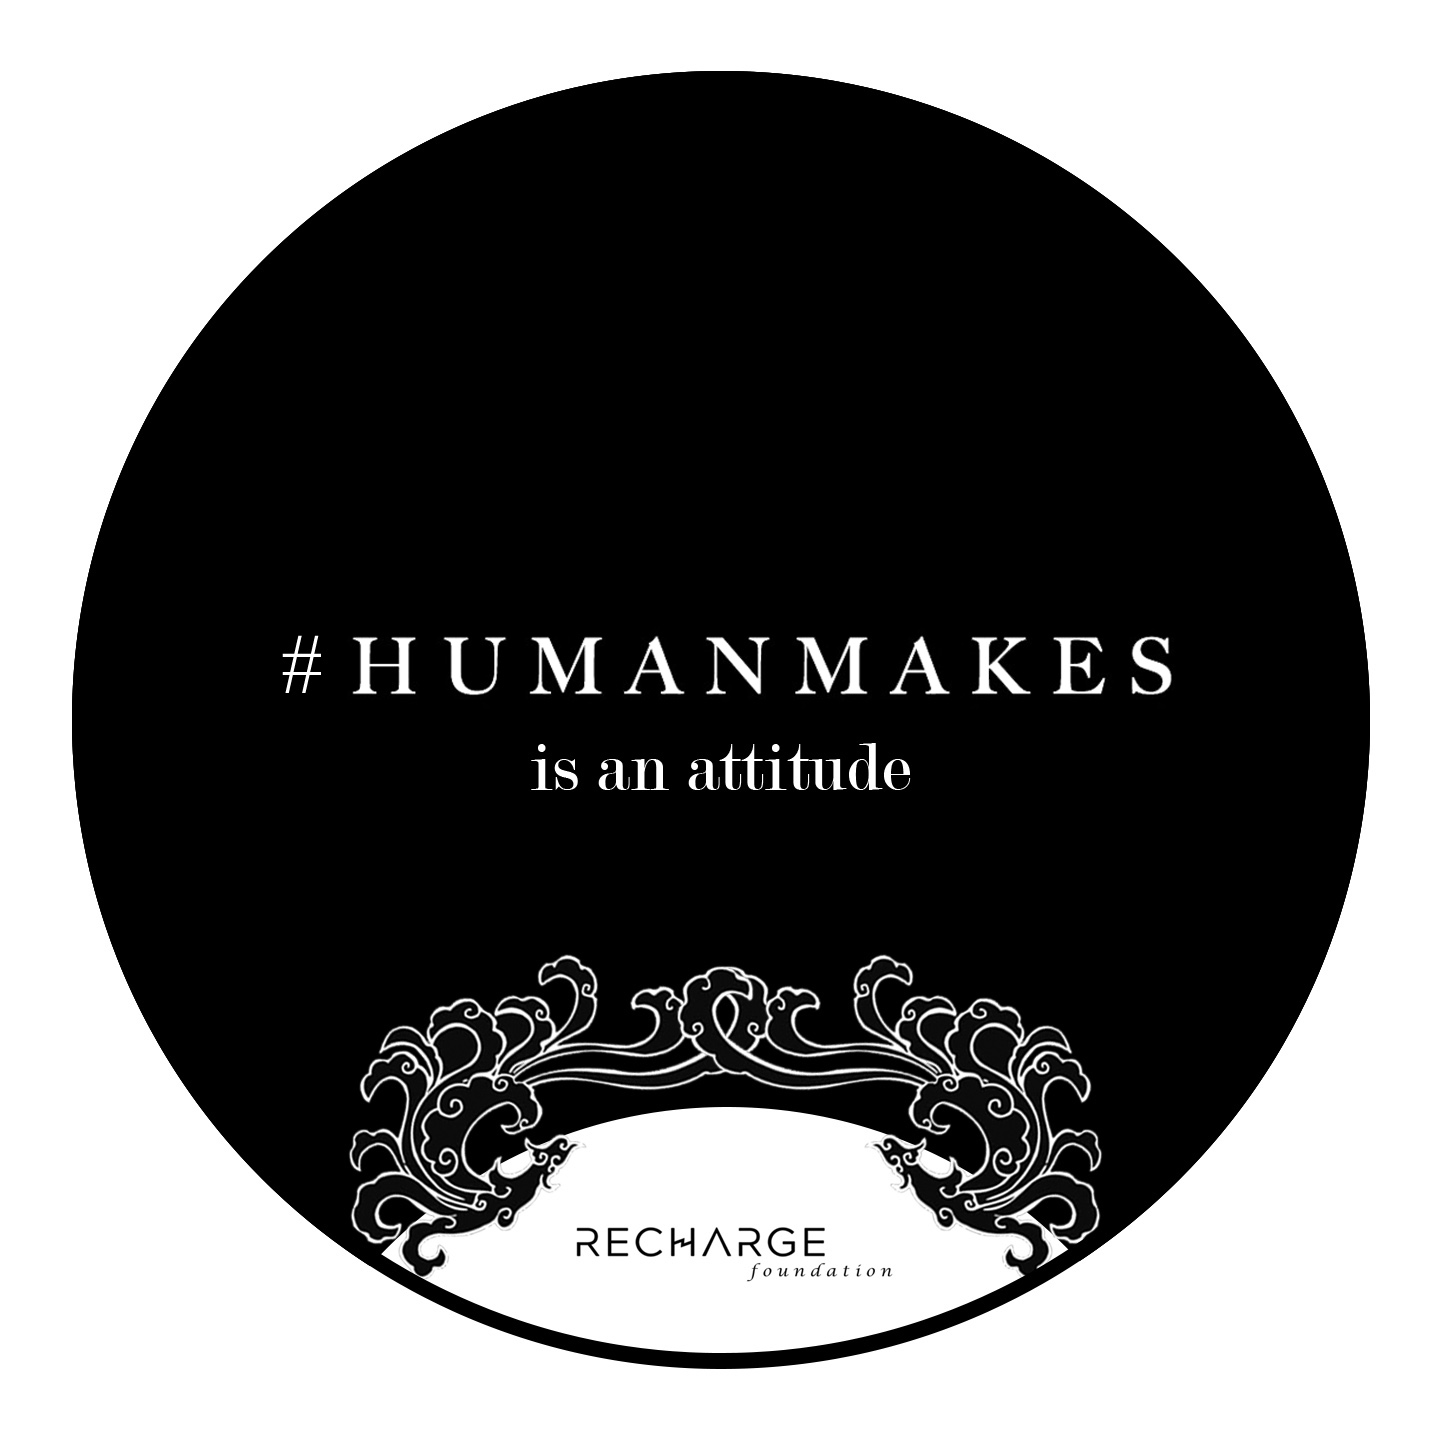 See the creations - Humanmakes artists partner with brands and talents to create cross-over collaborations